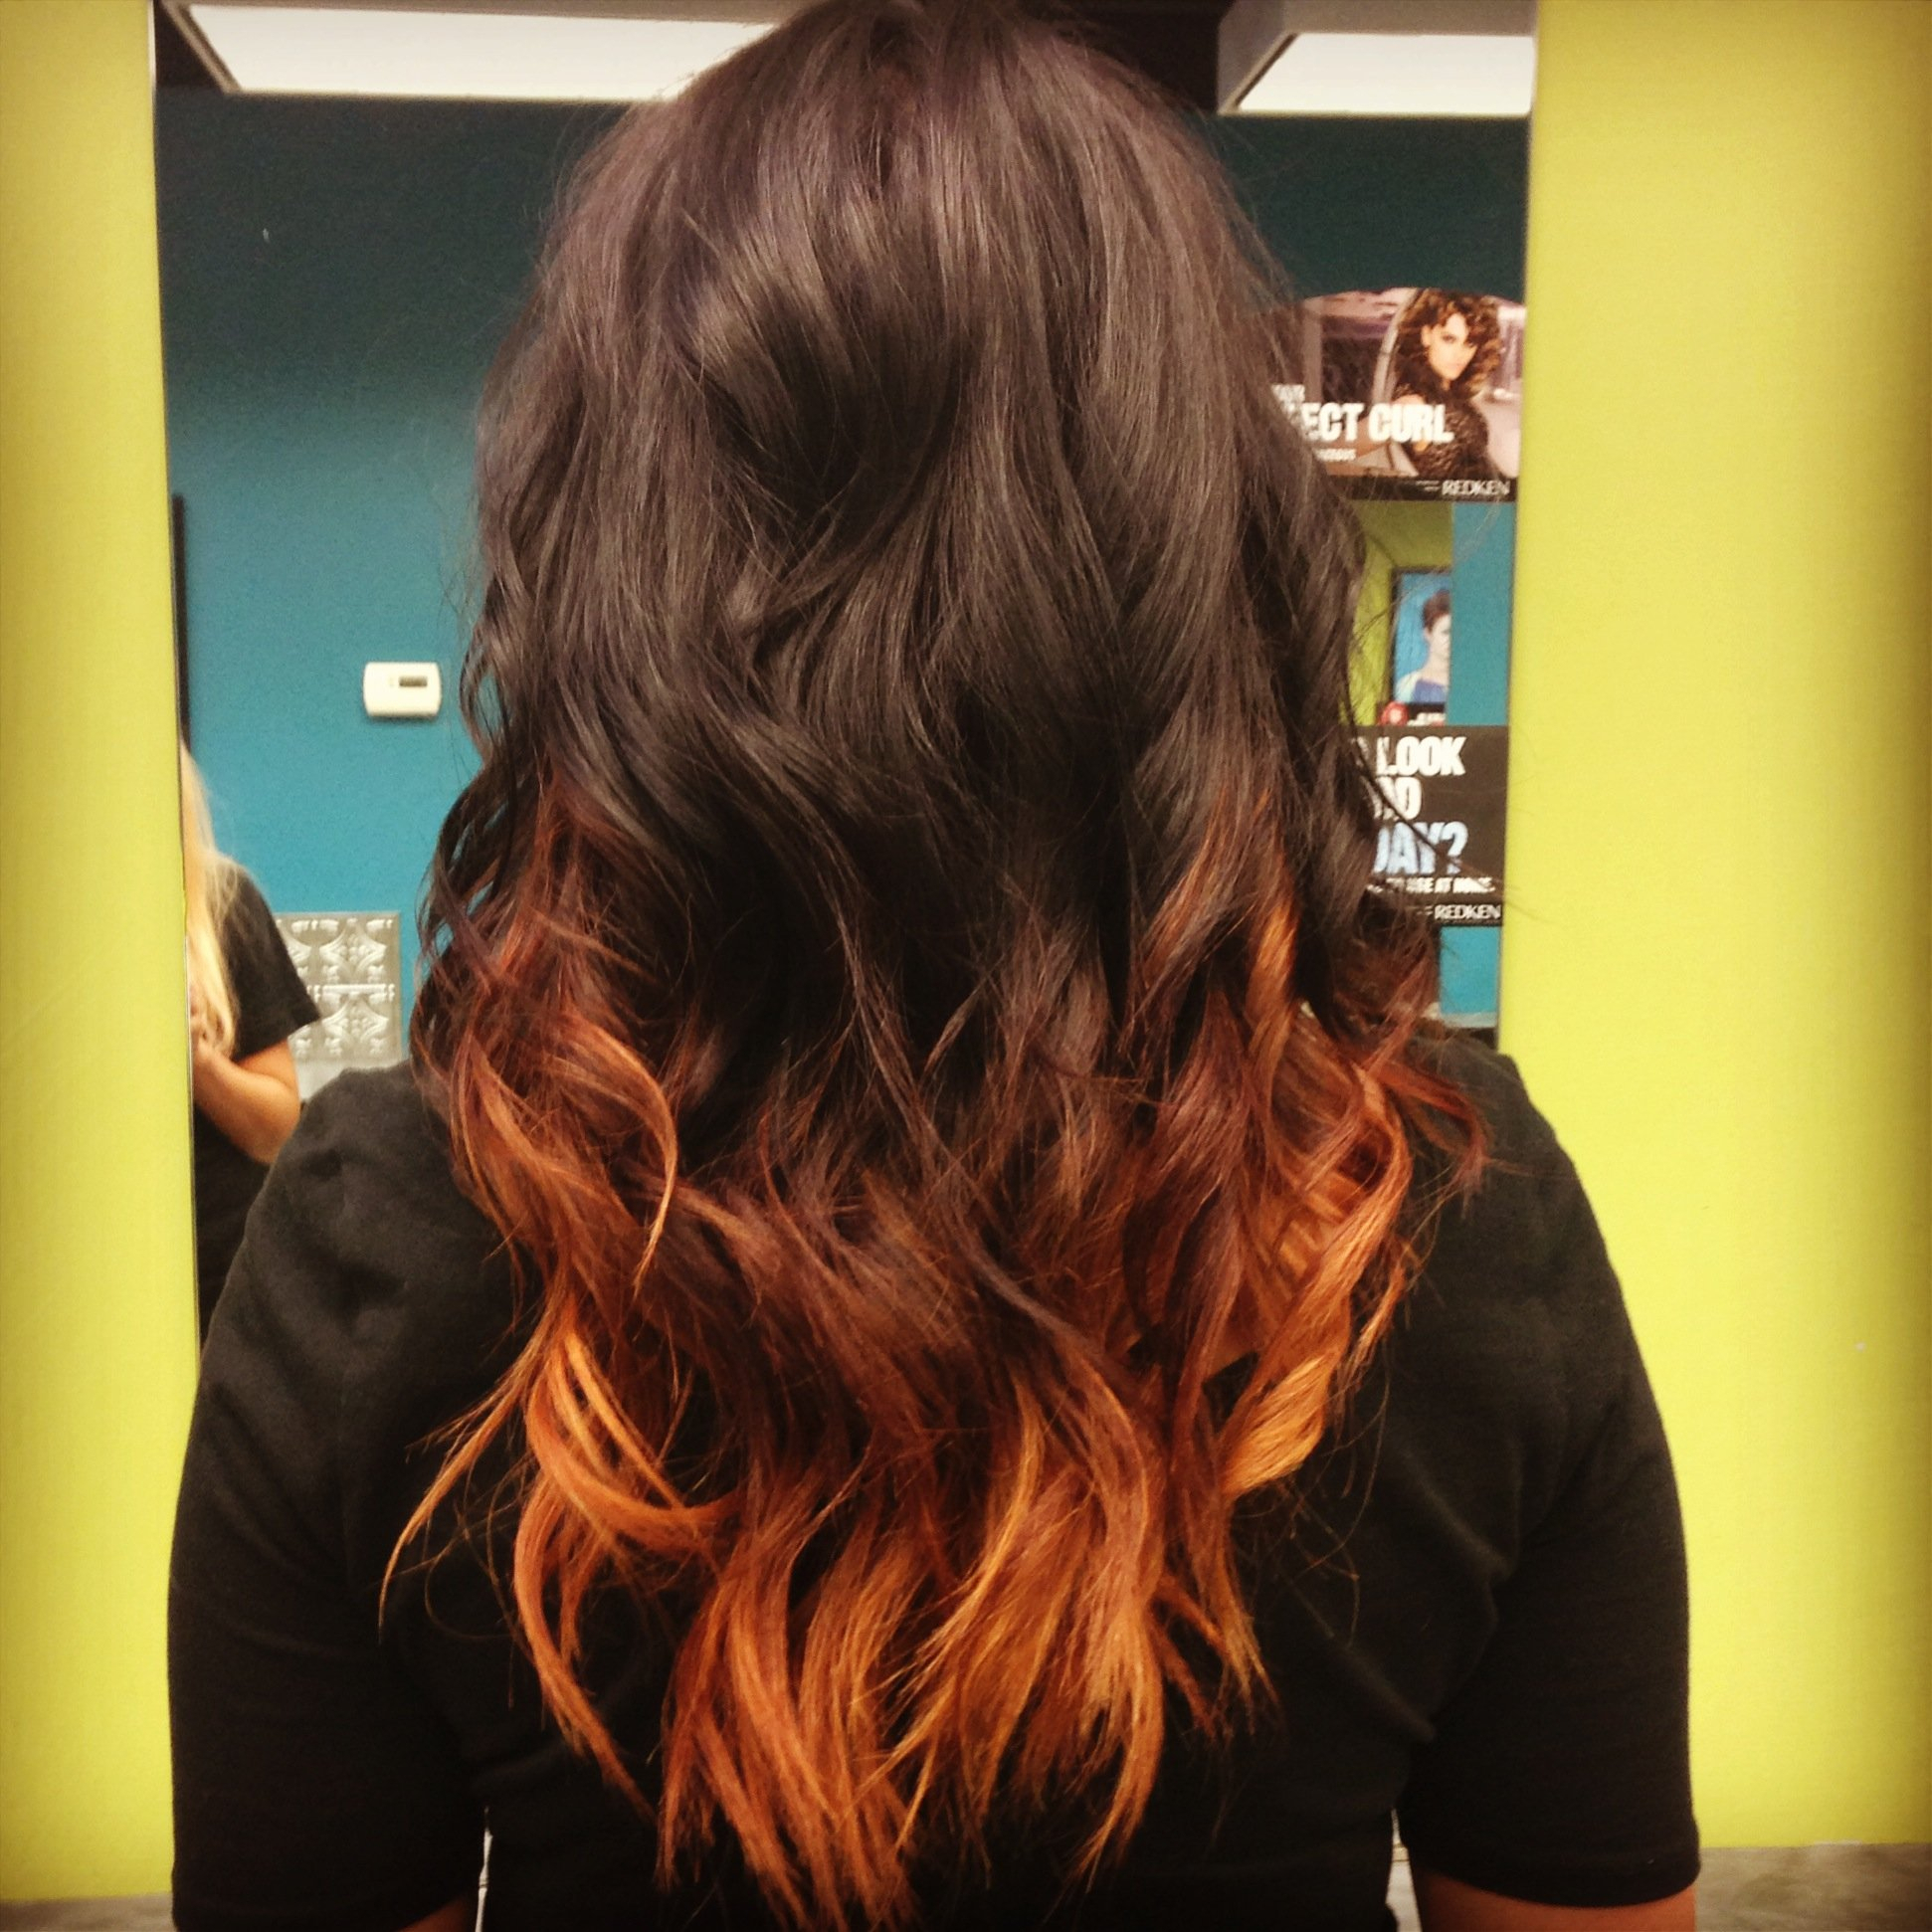 10 Cute Fun Red Hair Color Ideas 22 fiery red ombre hair color ideas 2020